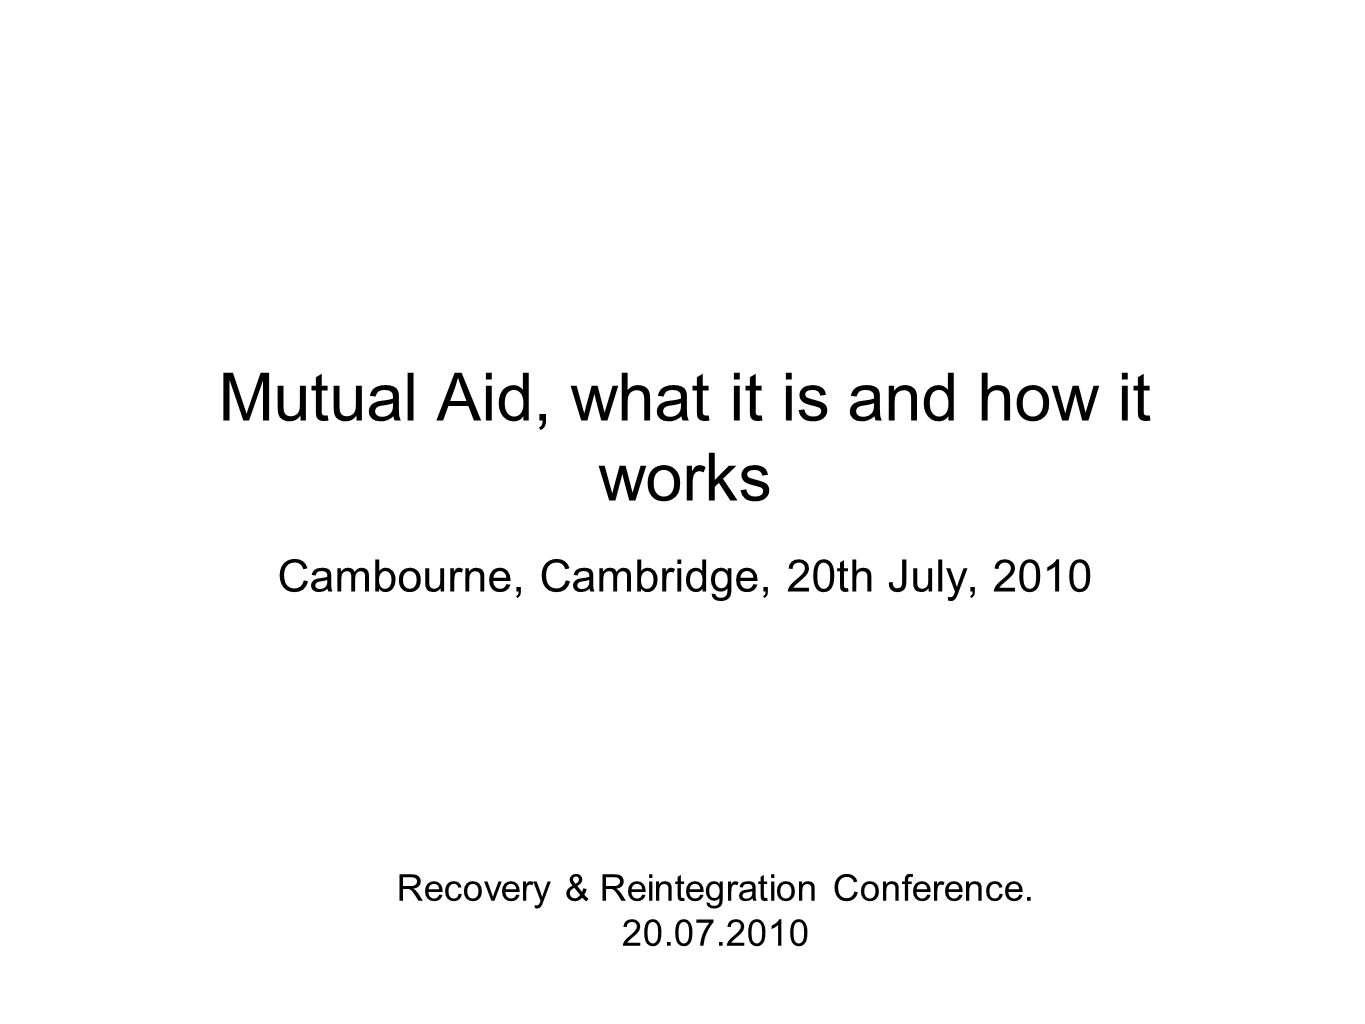 Mutual Aid, what it is and how it works